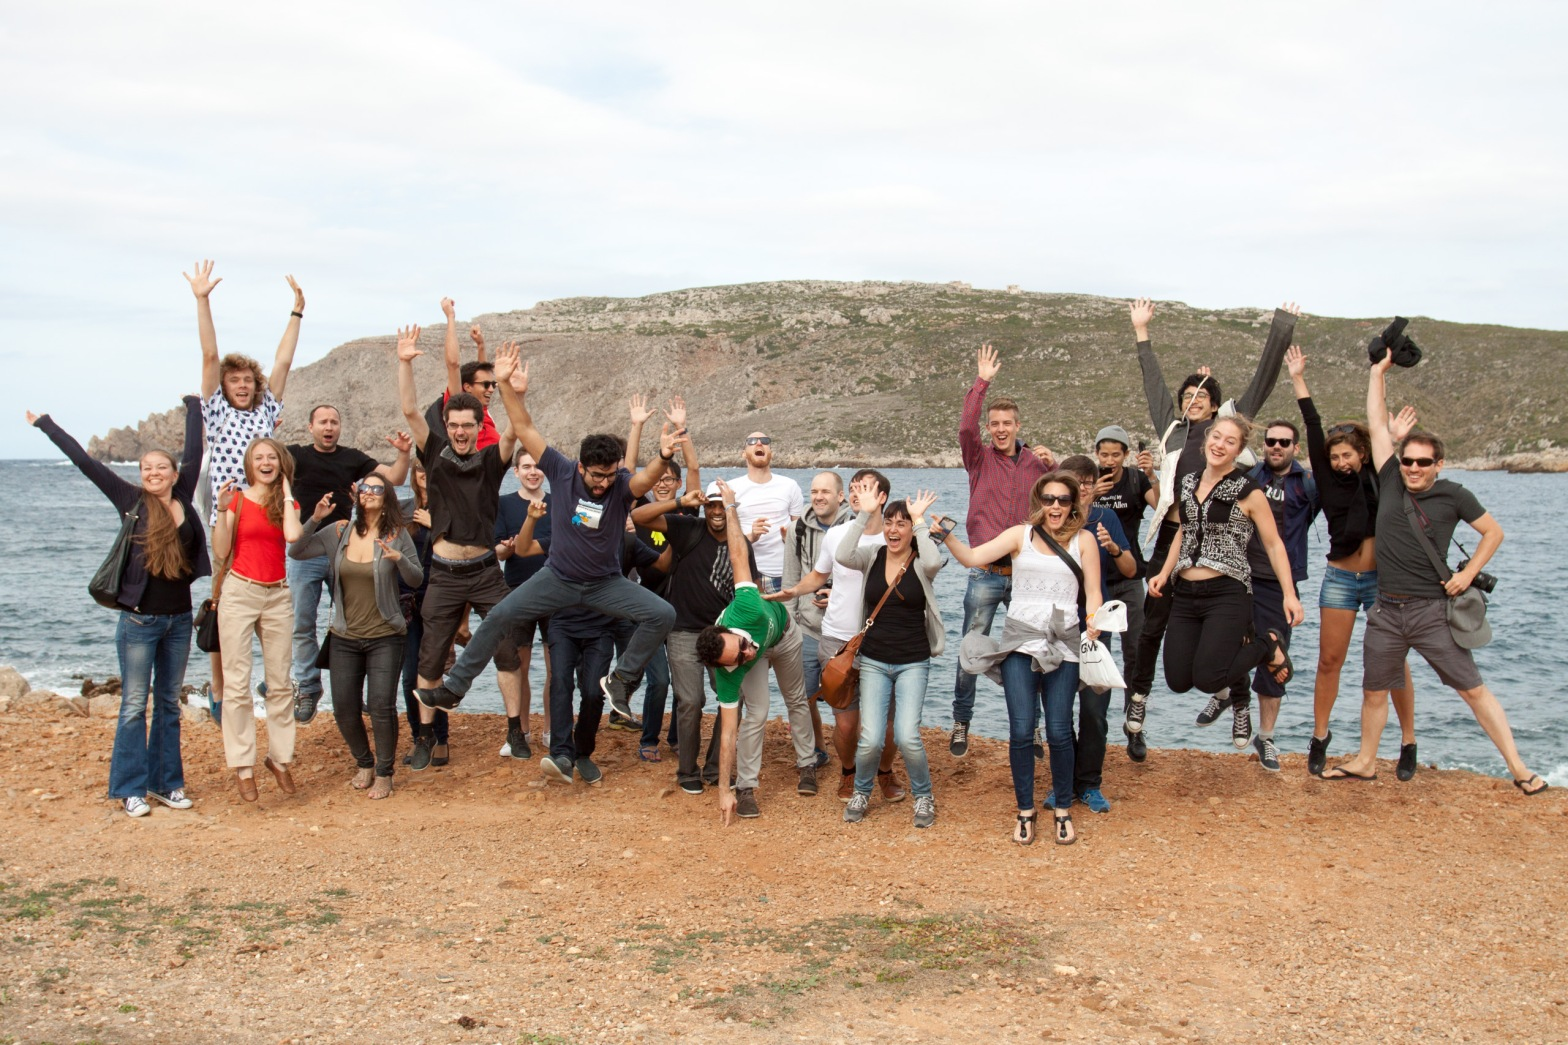 The team at Doist in Menorca in 2015. They are jumping into the air together.